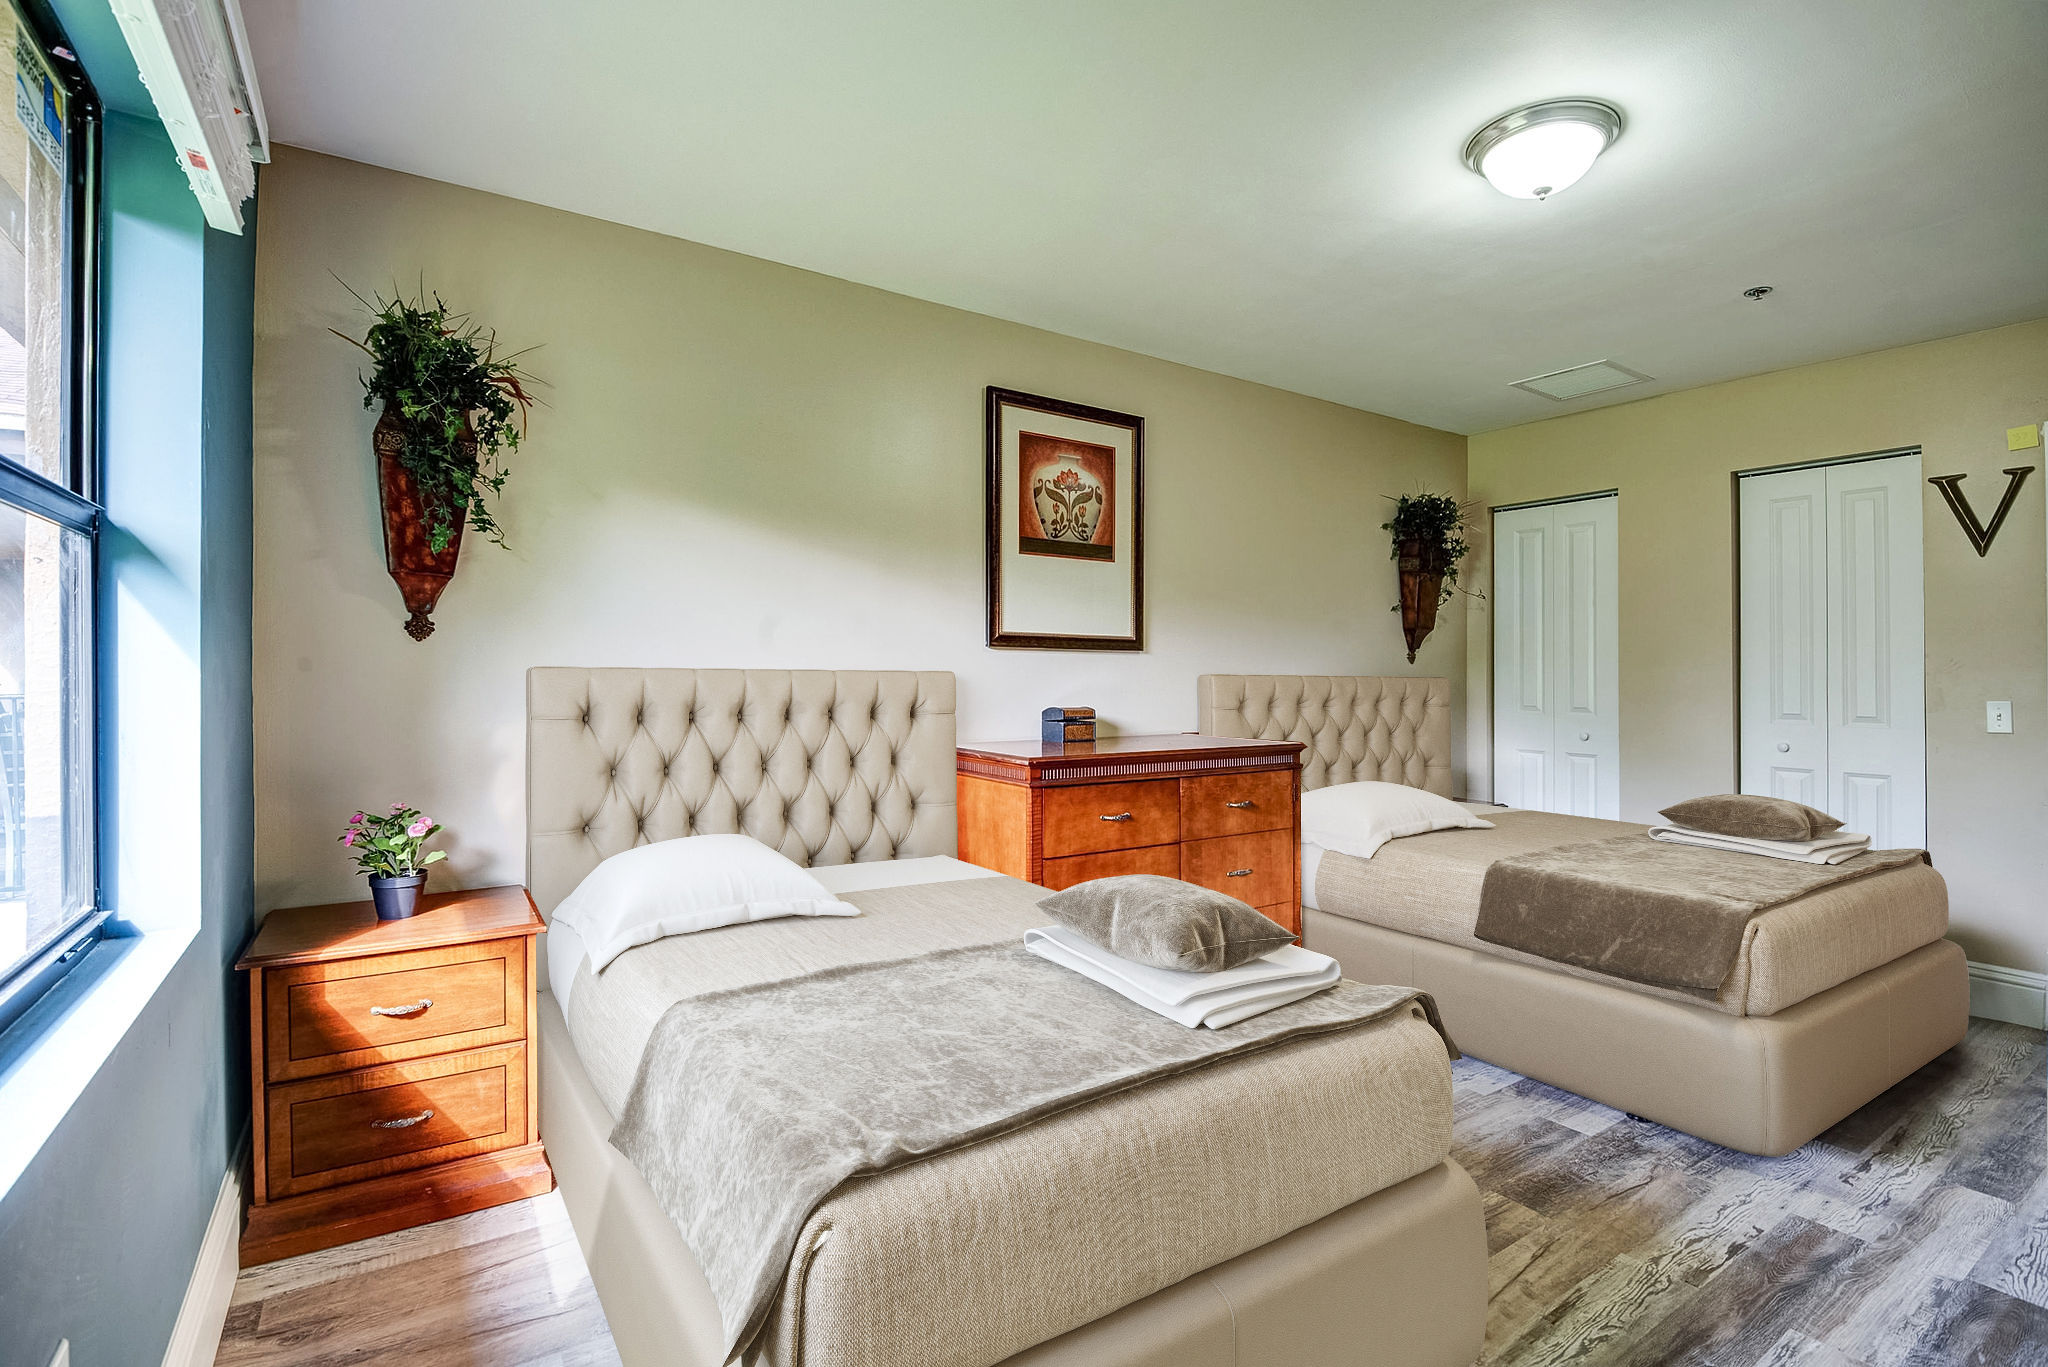 Bright comfortable room with beds